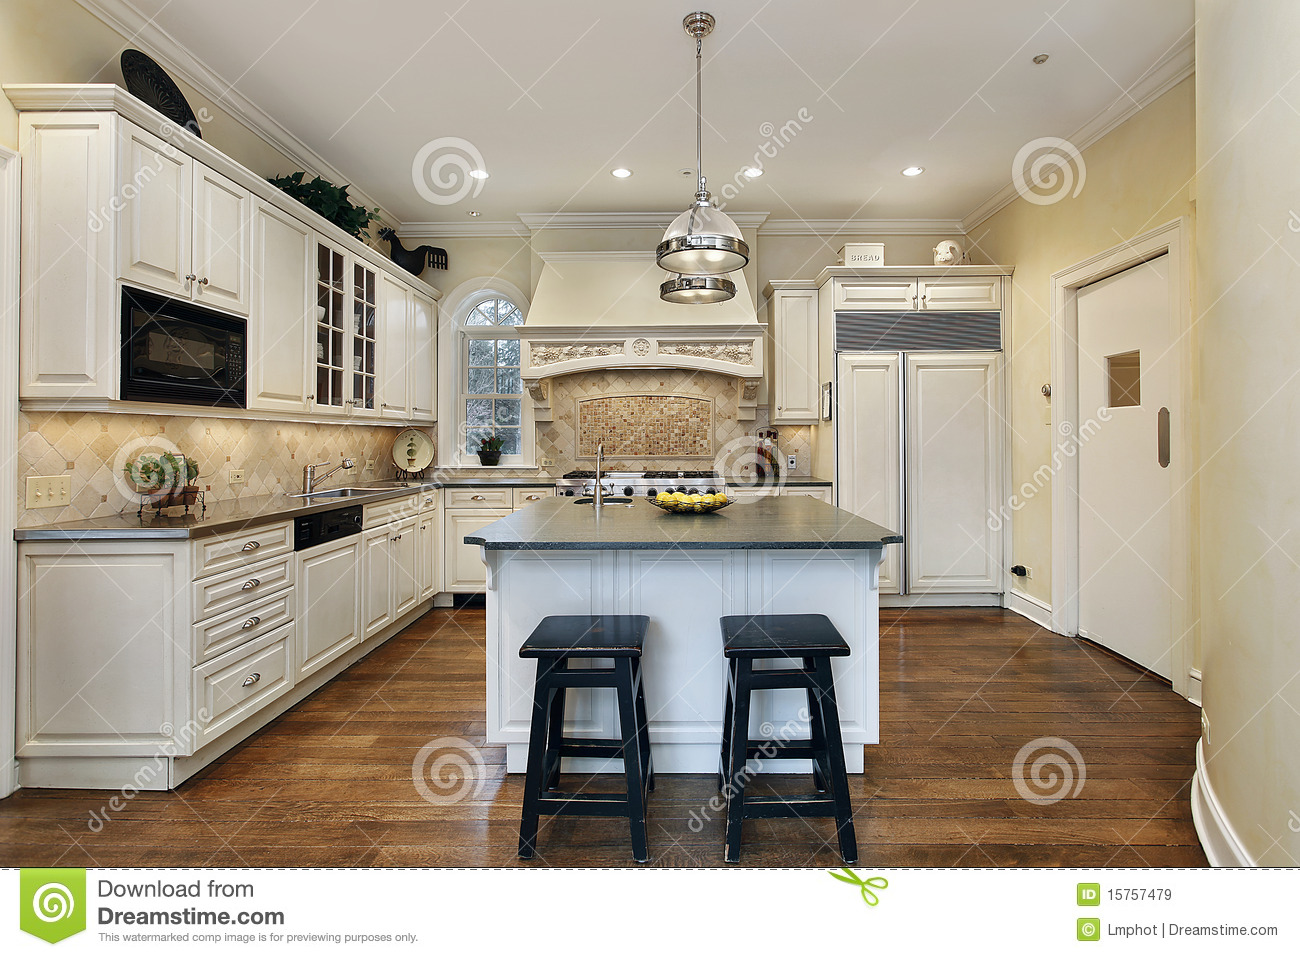 kitchen with decorative oven backsplash royalty free stock traditional backsplashes houzz